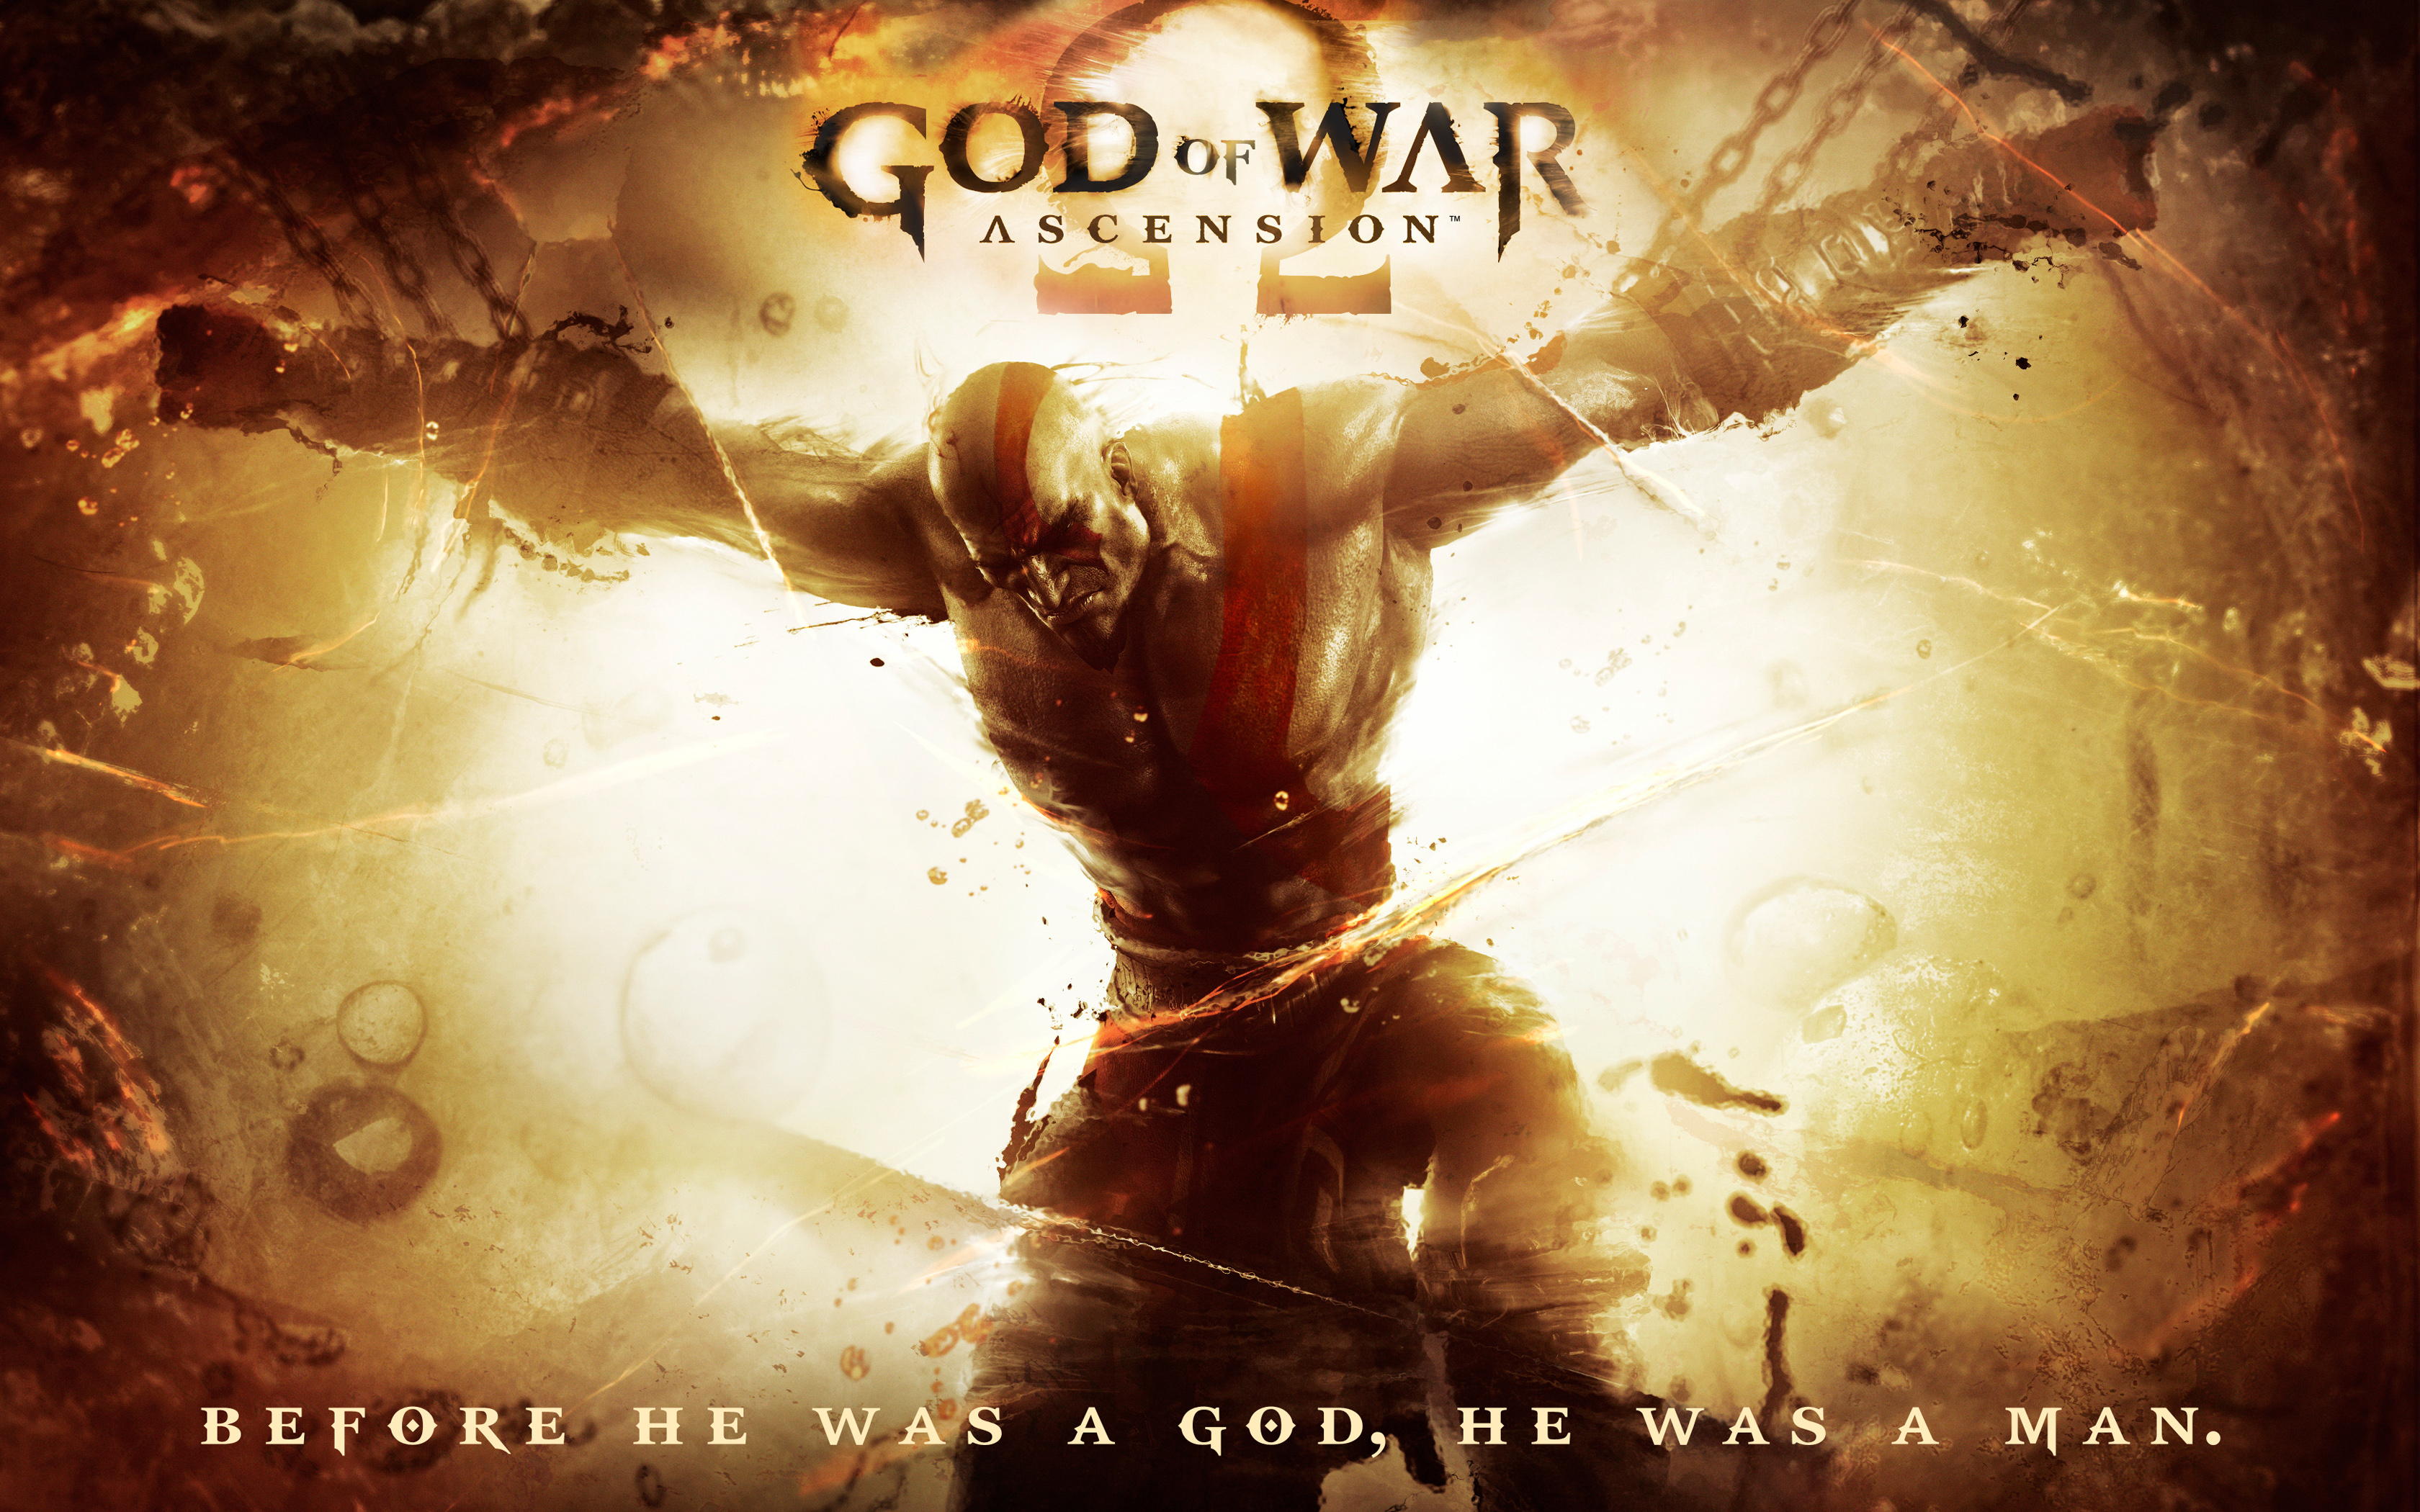 God Of War Wallpaper Hd 1080p god of war 4 ascension wallpapers hd 3360x2100